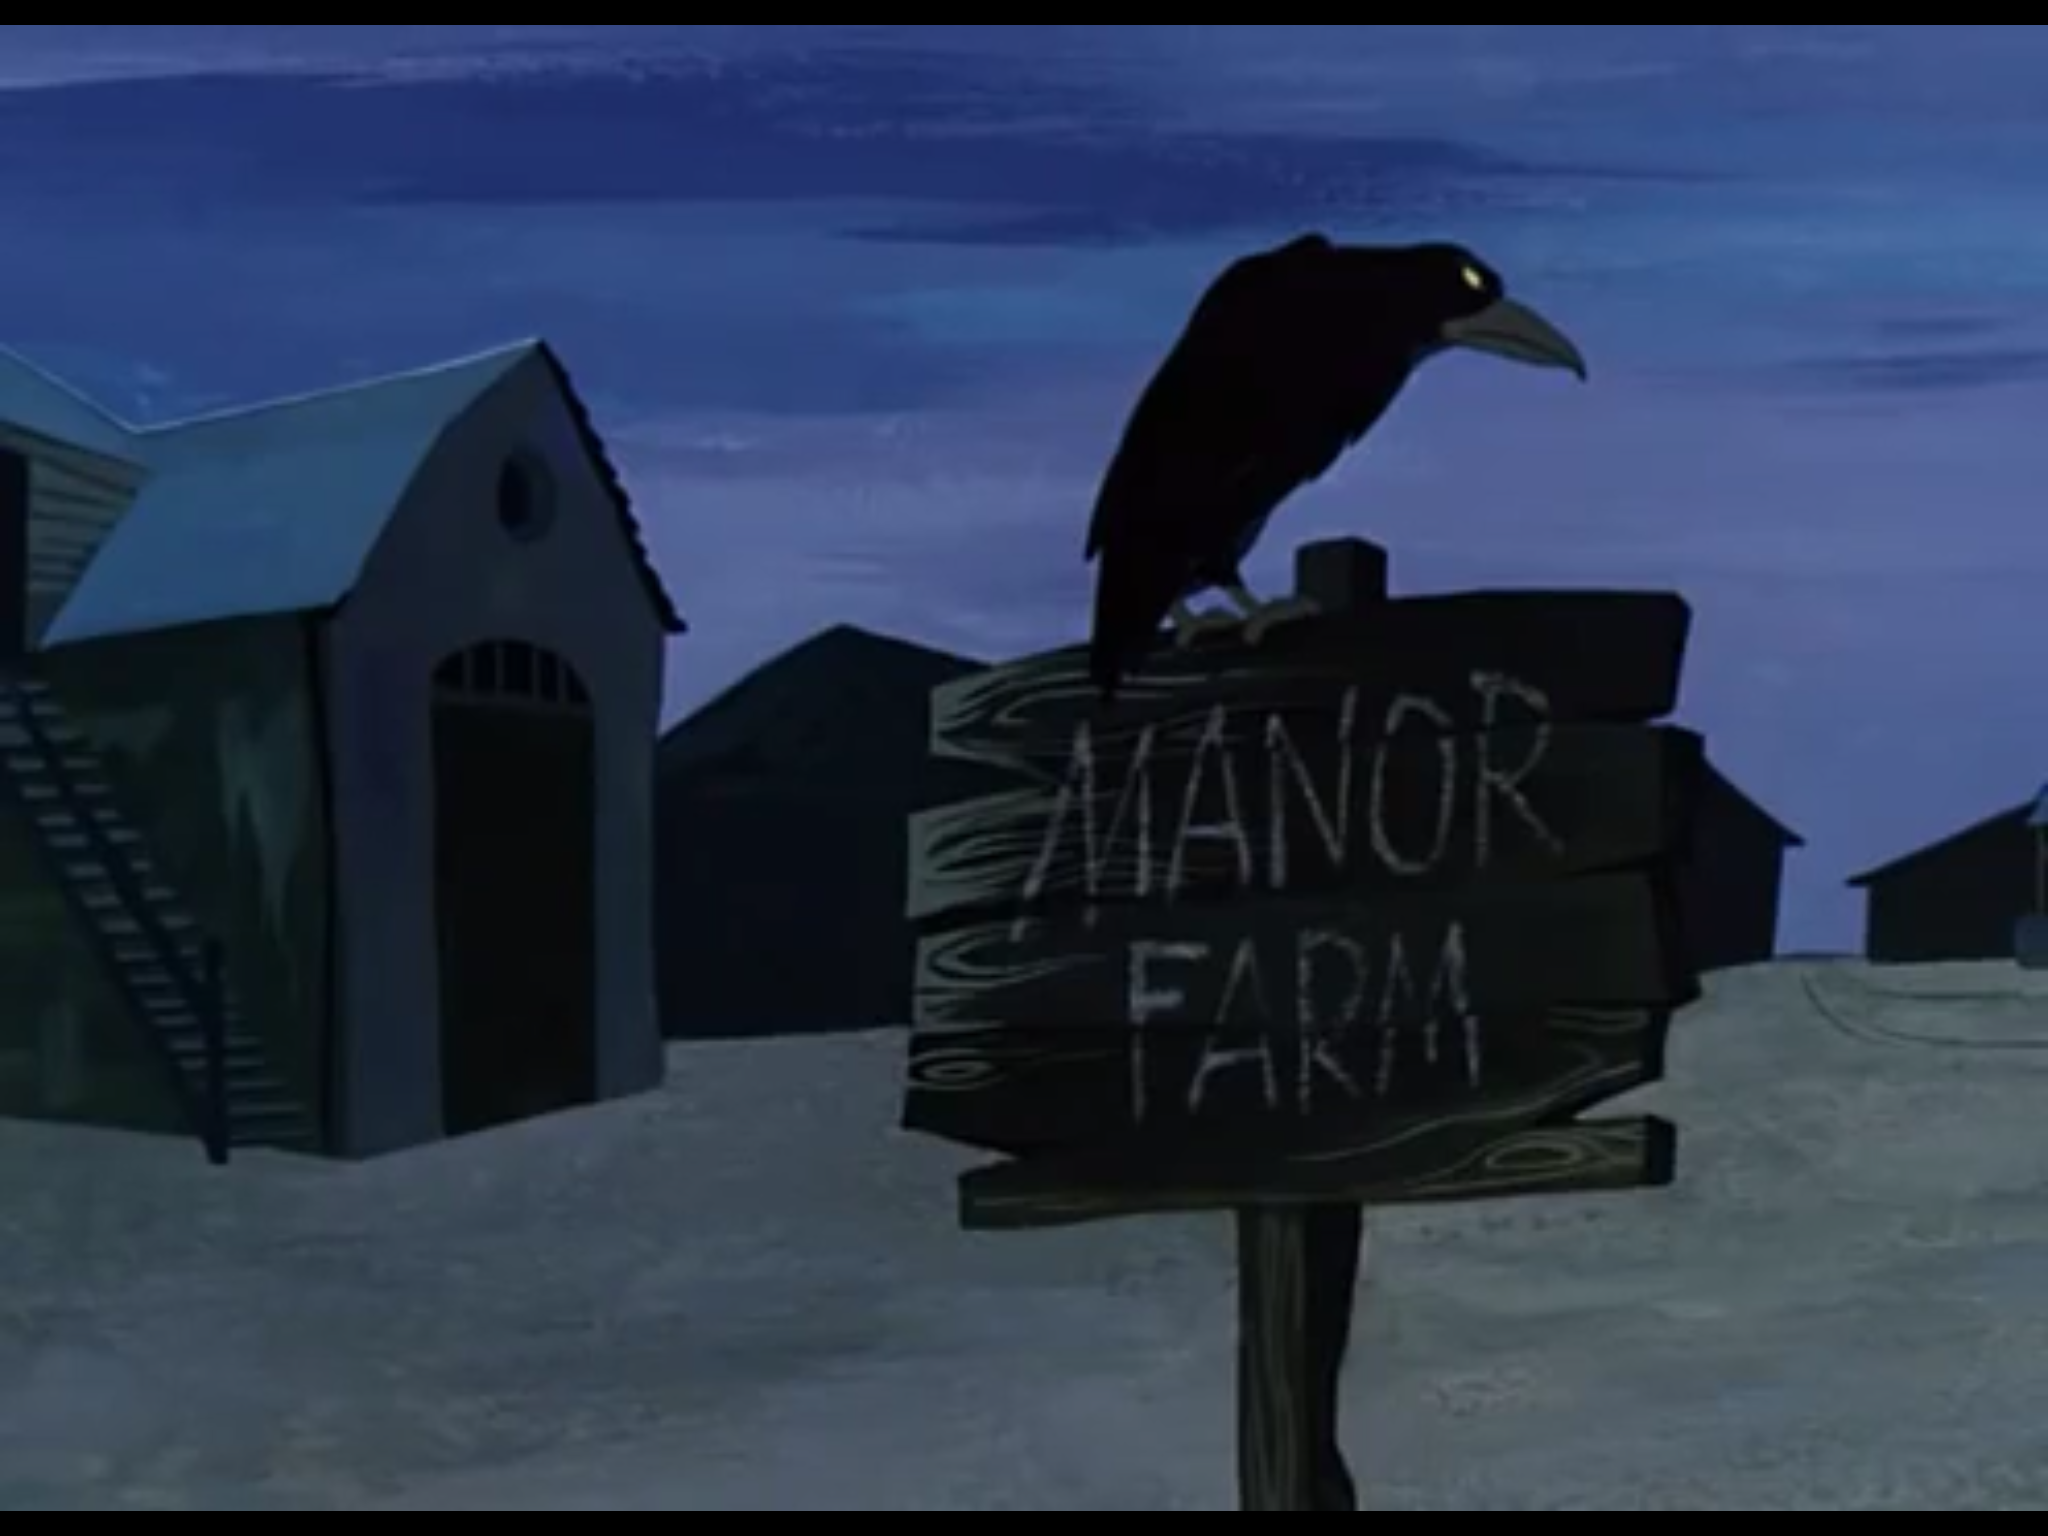 Manor/Animal Farm